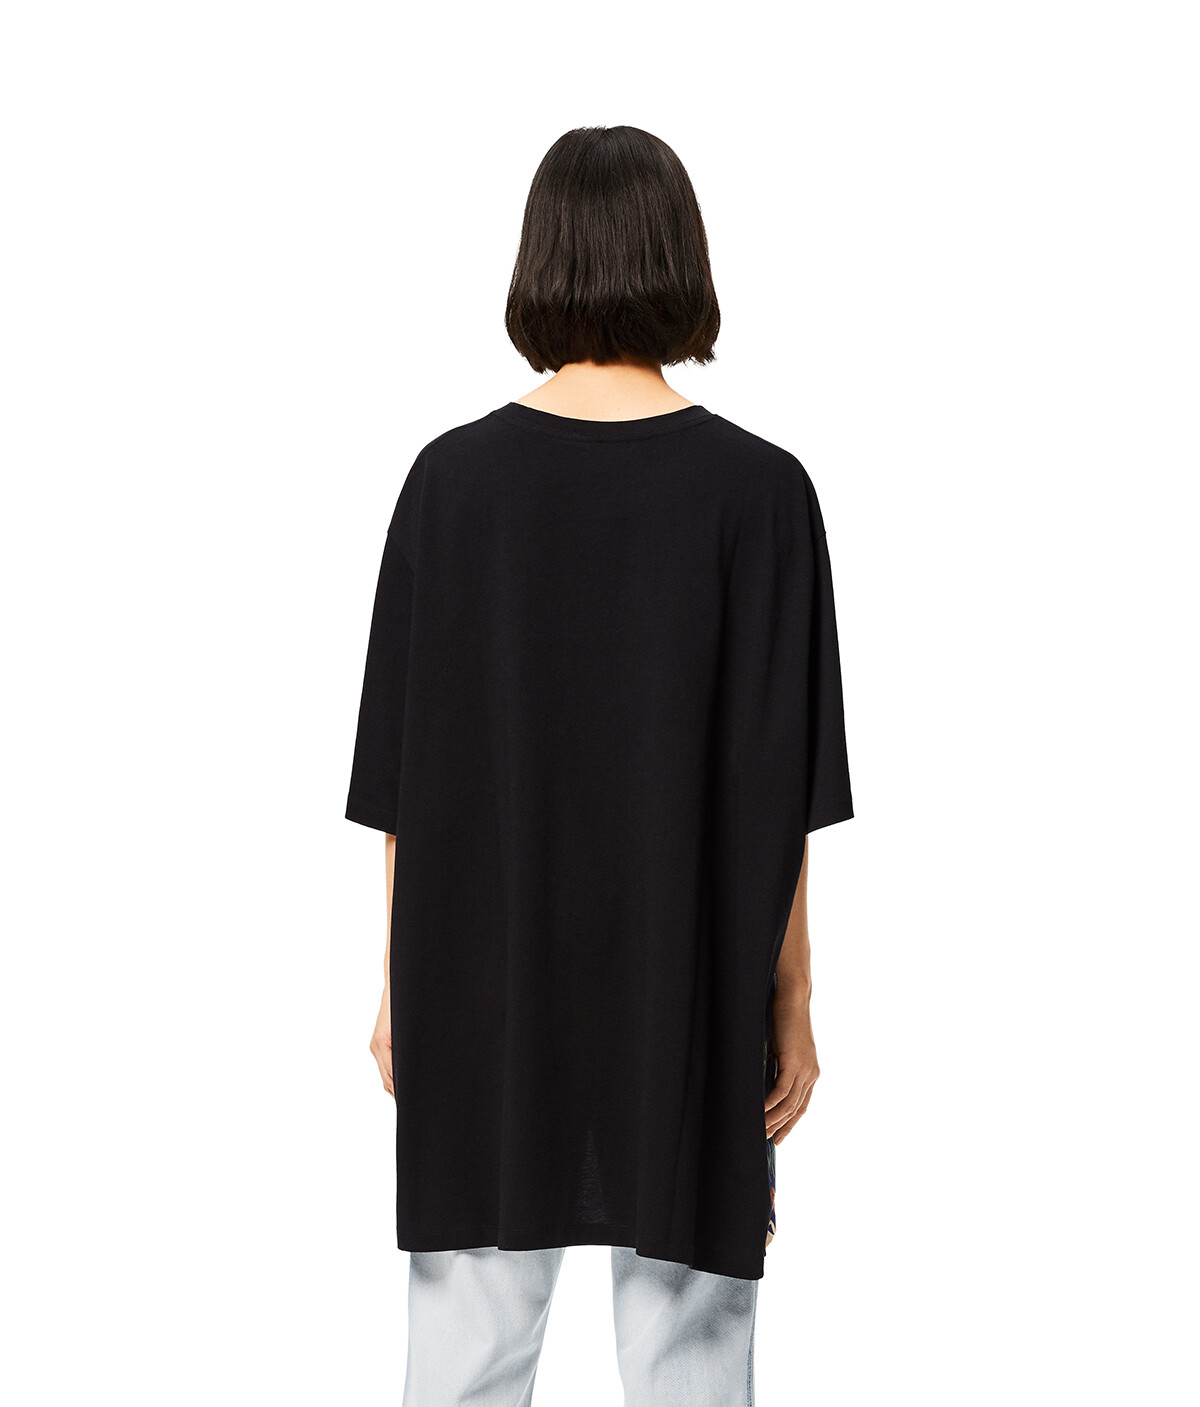 LOEWE Oversize T-Shirt In Mermaid Cotton And Silk Black/Blue front